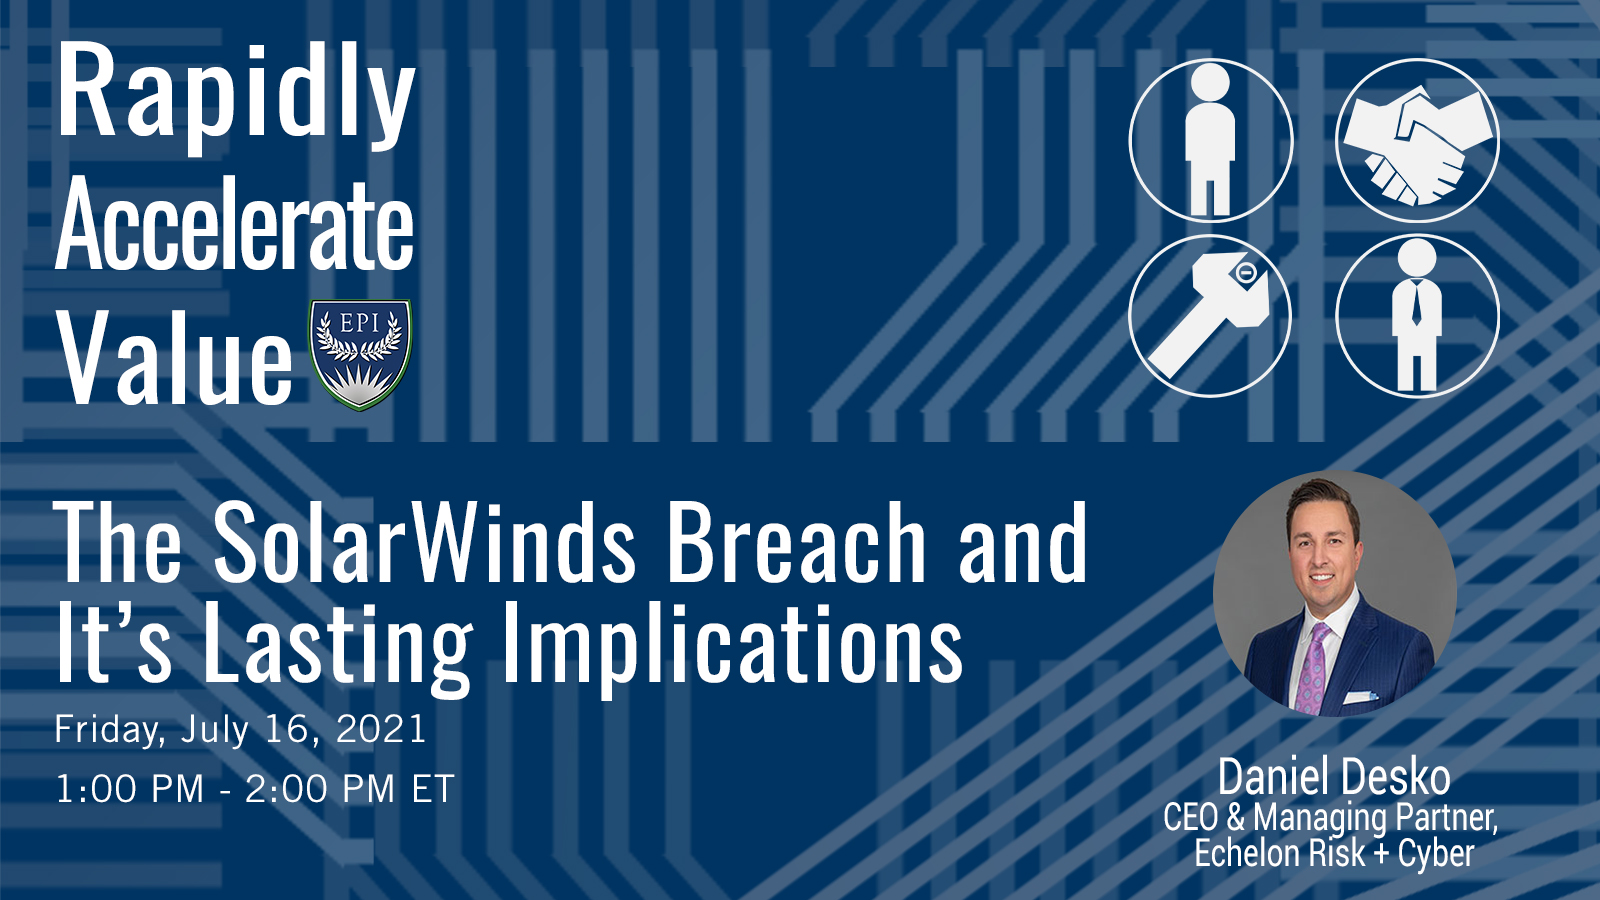 The SolarWinds Breach and It's Lasting Implications